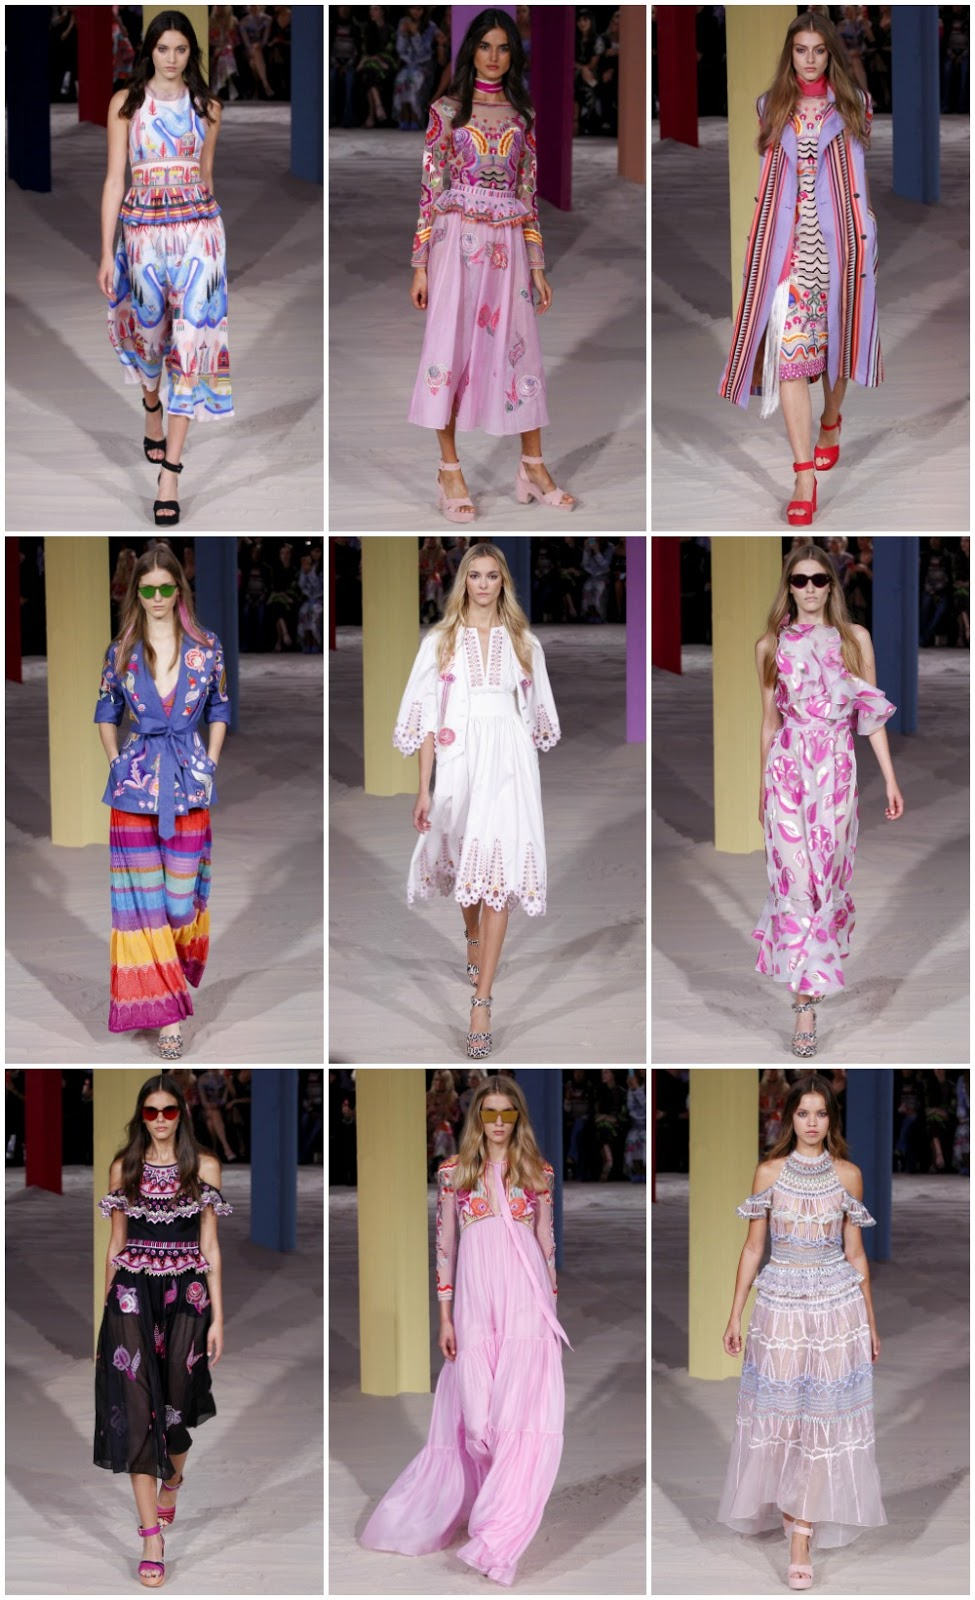 Temperley London SS17 - The collection